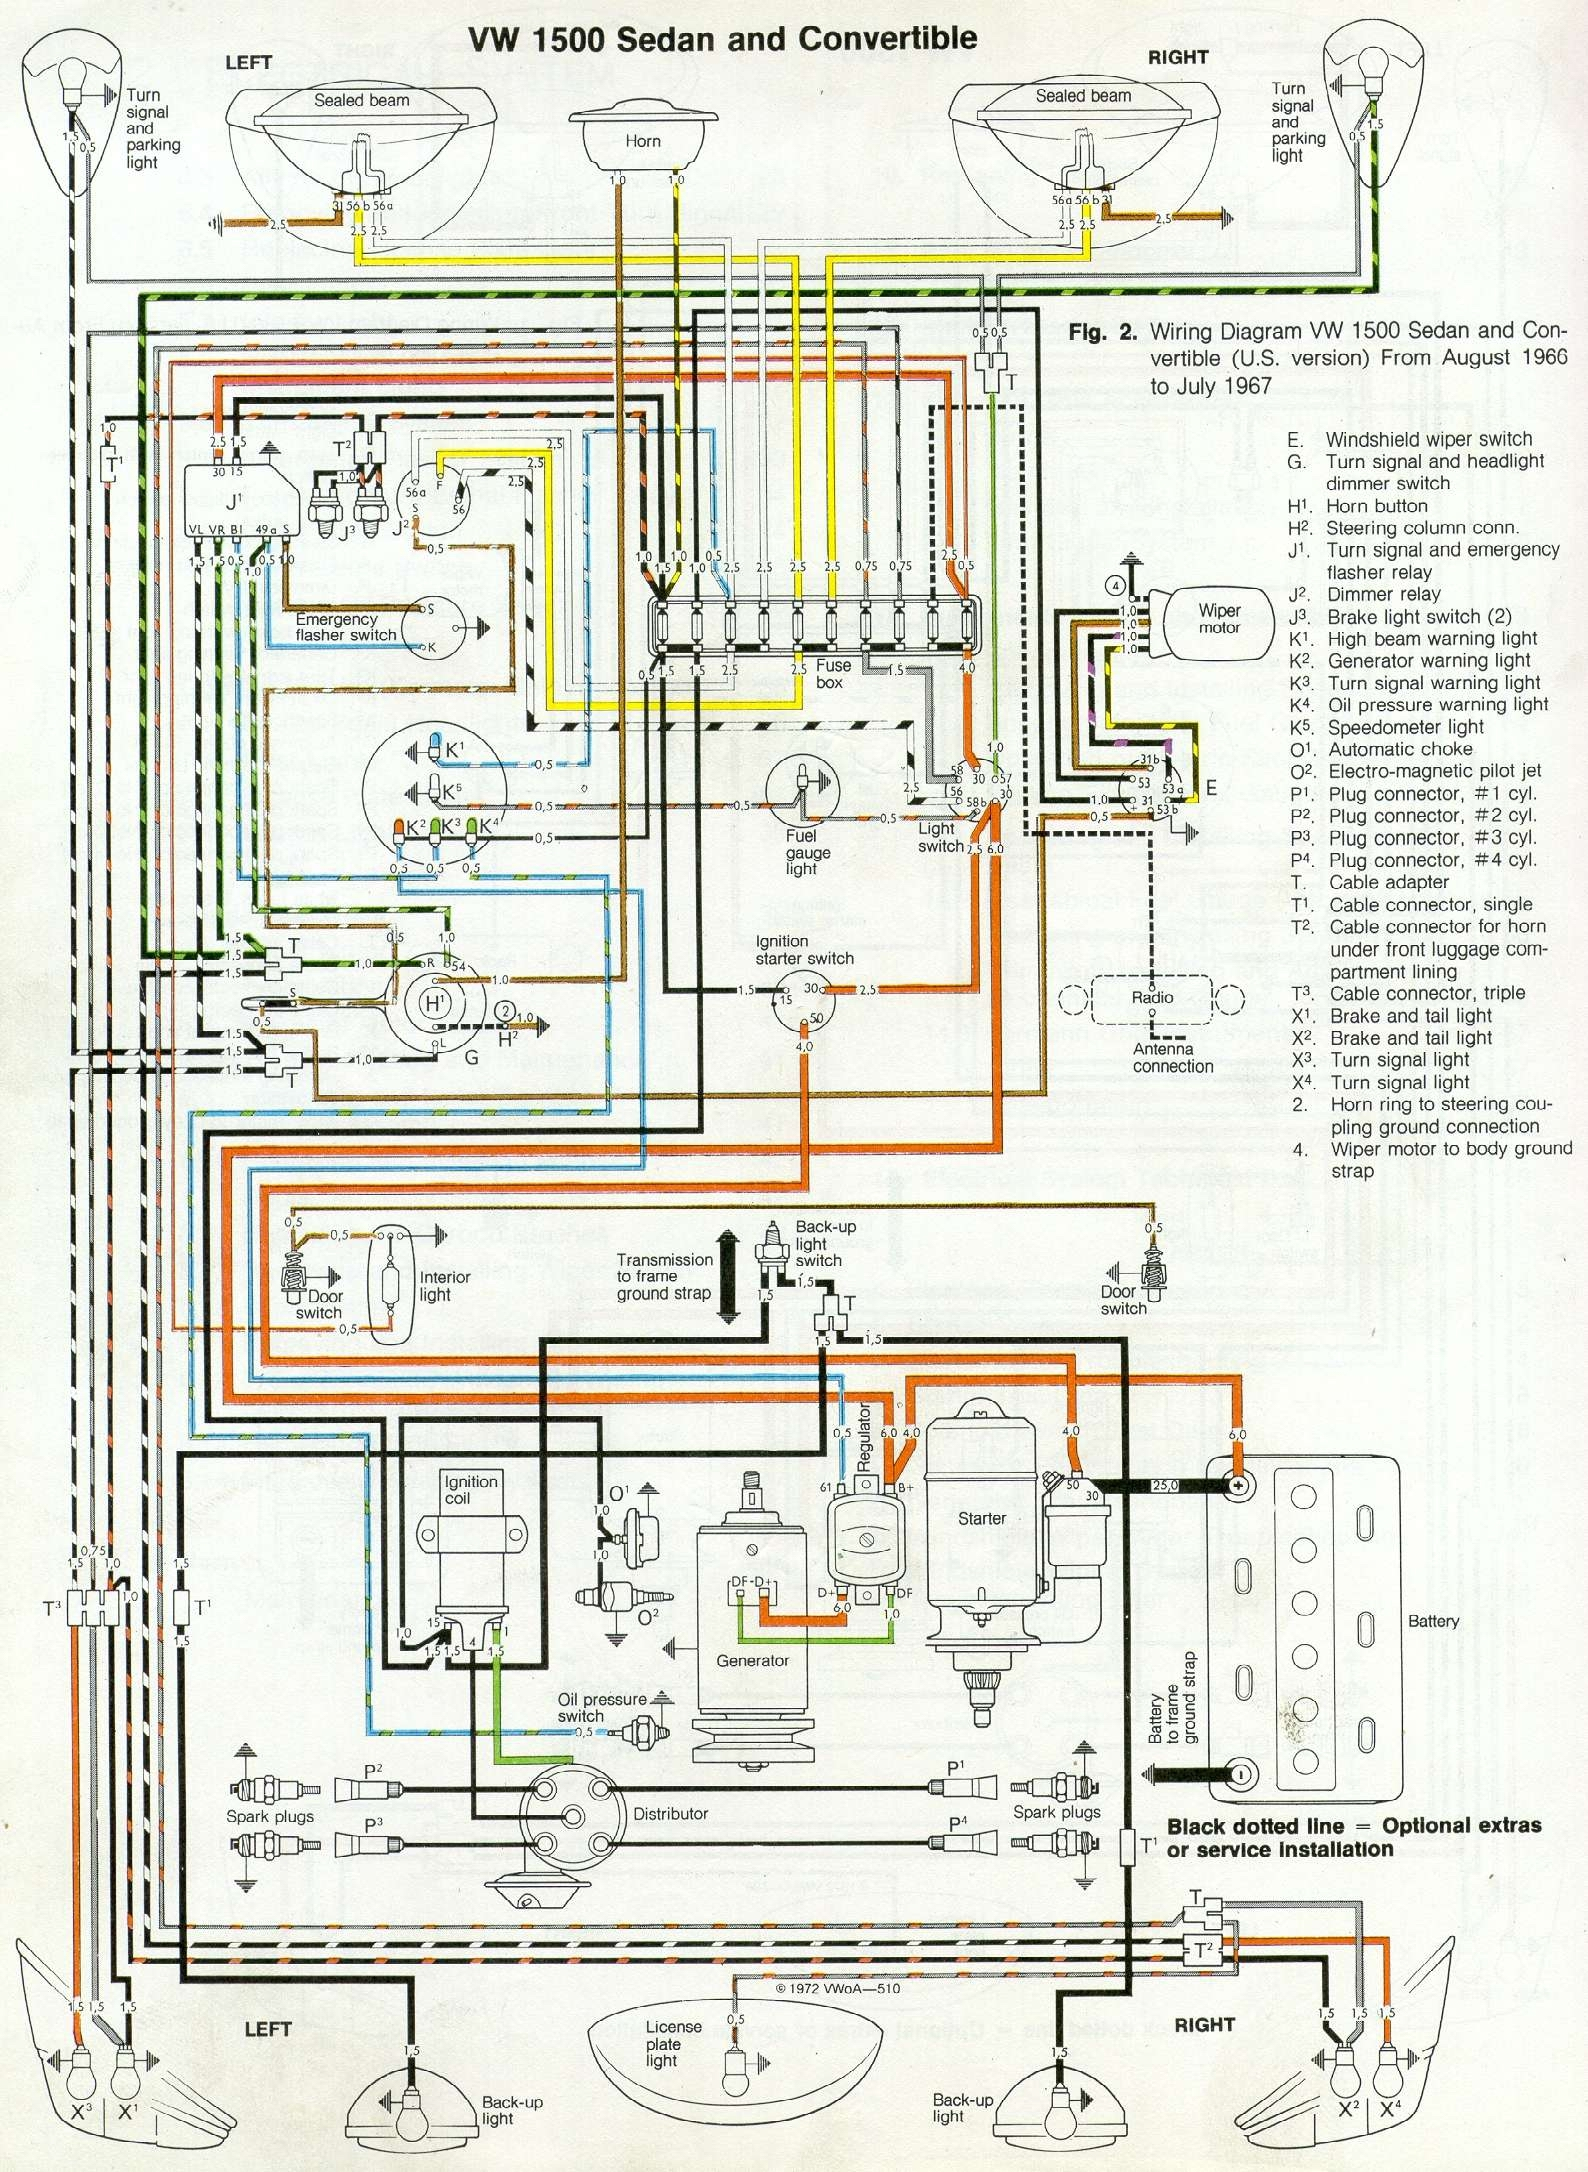 1967 Vw Beetle Wiring Diagram Archive Of Automotive 2002 F350 Turn Signal 66 And 67 Rh 1967beetle Com Engine